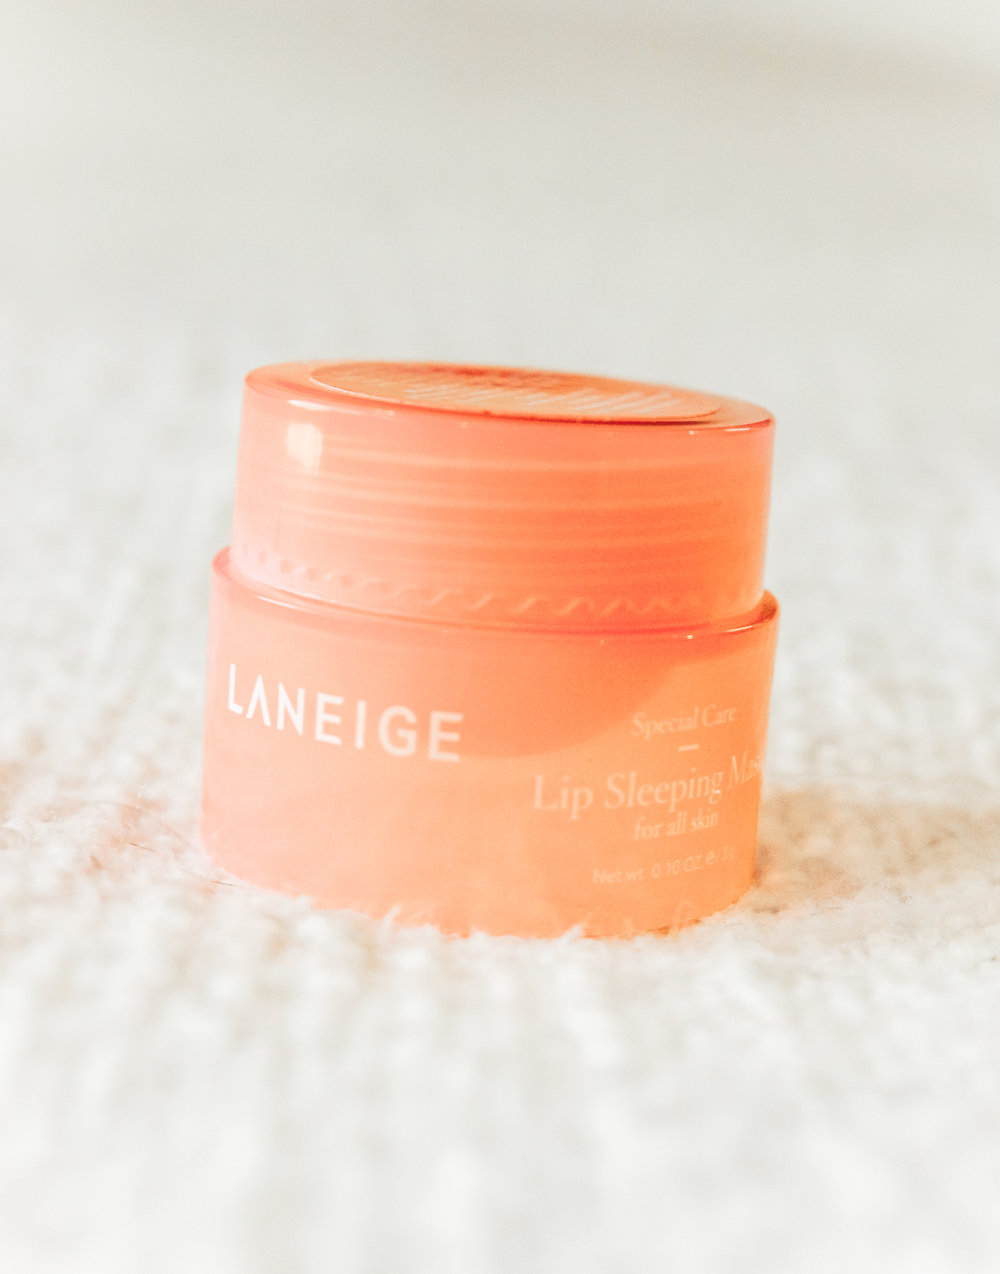 Laneige Lip Sleeping Mask: - Laneige Lip Sleeping Mask: y'all this stuff is seriously magical. I received a sample of this about a month ago and have been using it consistently ever since. I can't even explain how much it has improved the texture and overall hydration of my lips! I hardly use chapstick anymore because I don't really need it now! Chris uses this every night too and loves it.If you're gonna buy anything during the sale, buy this!